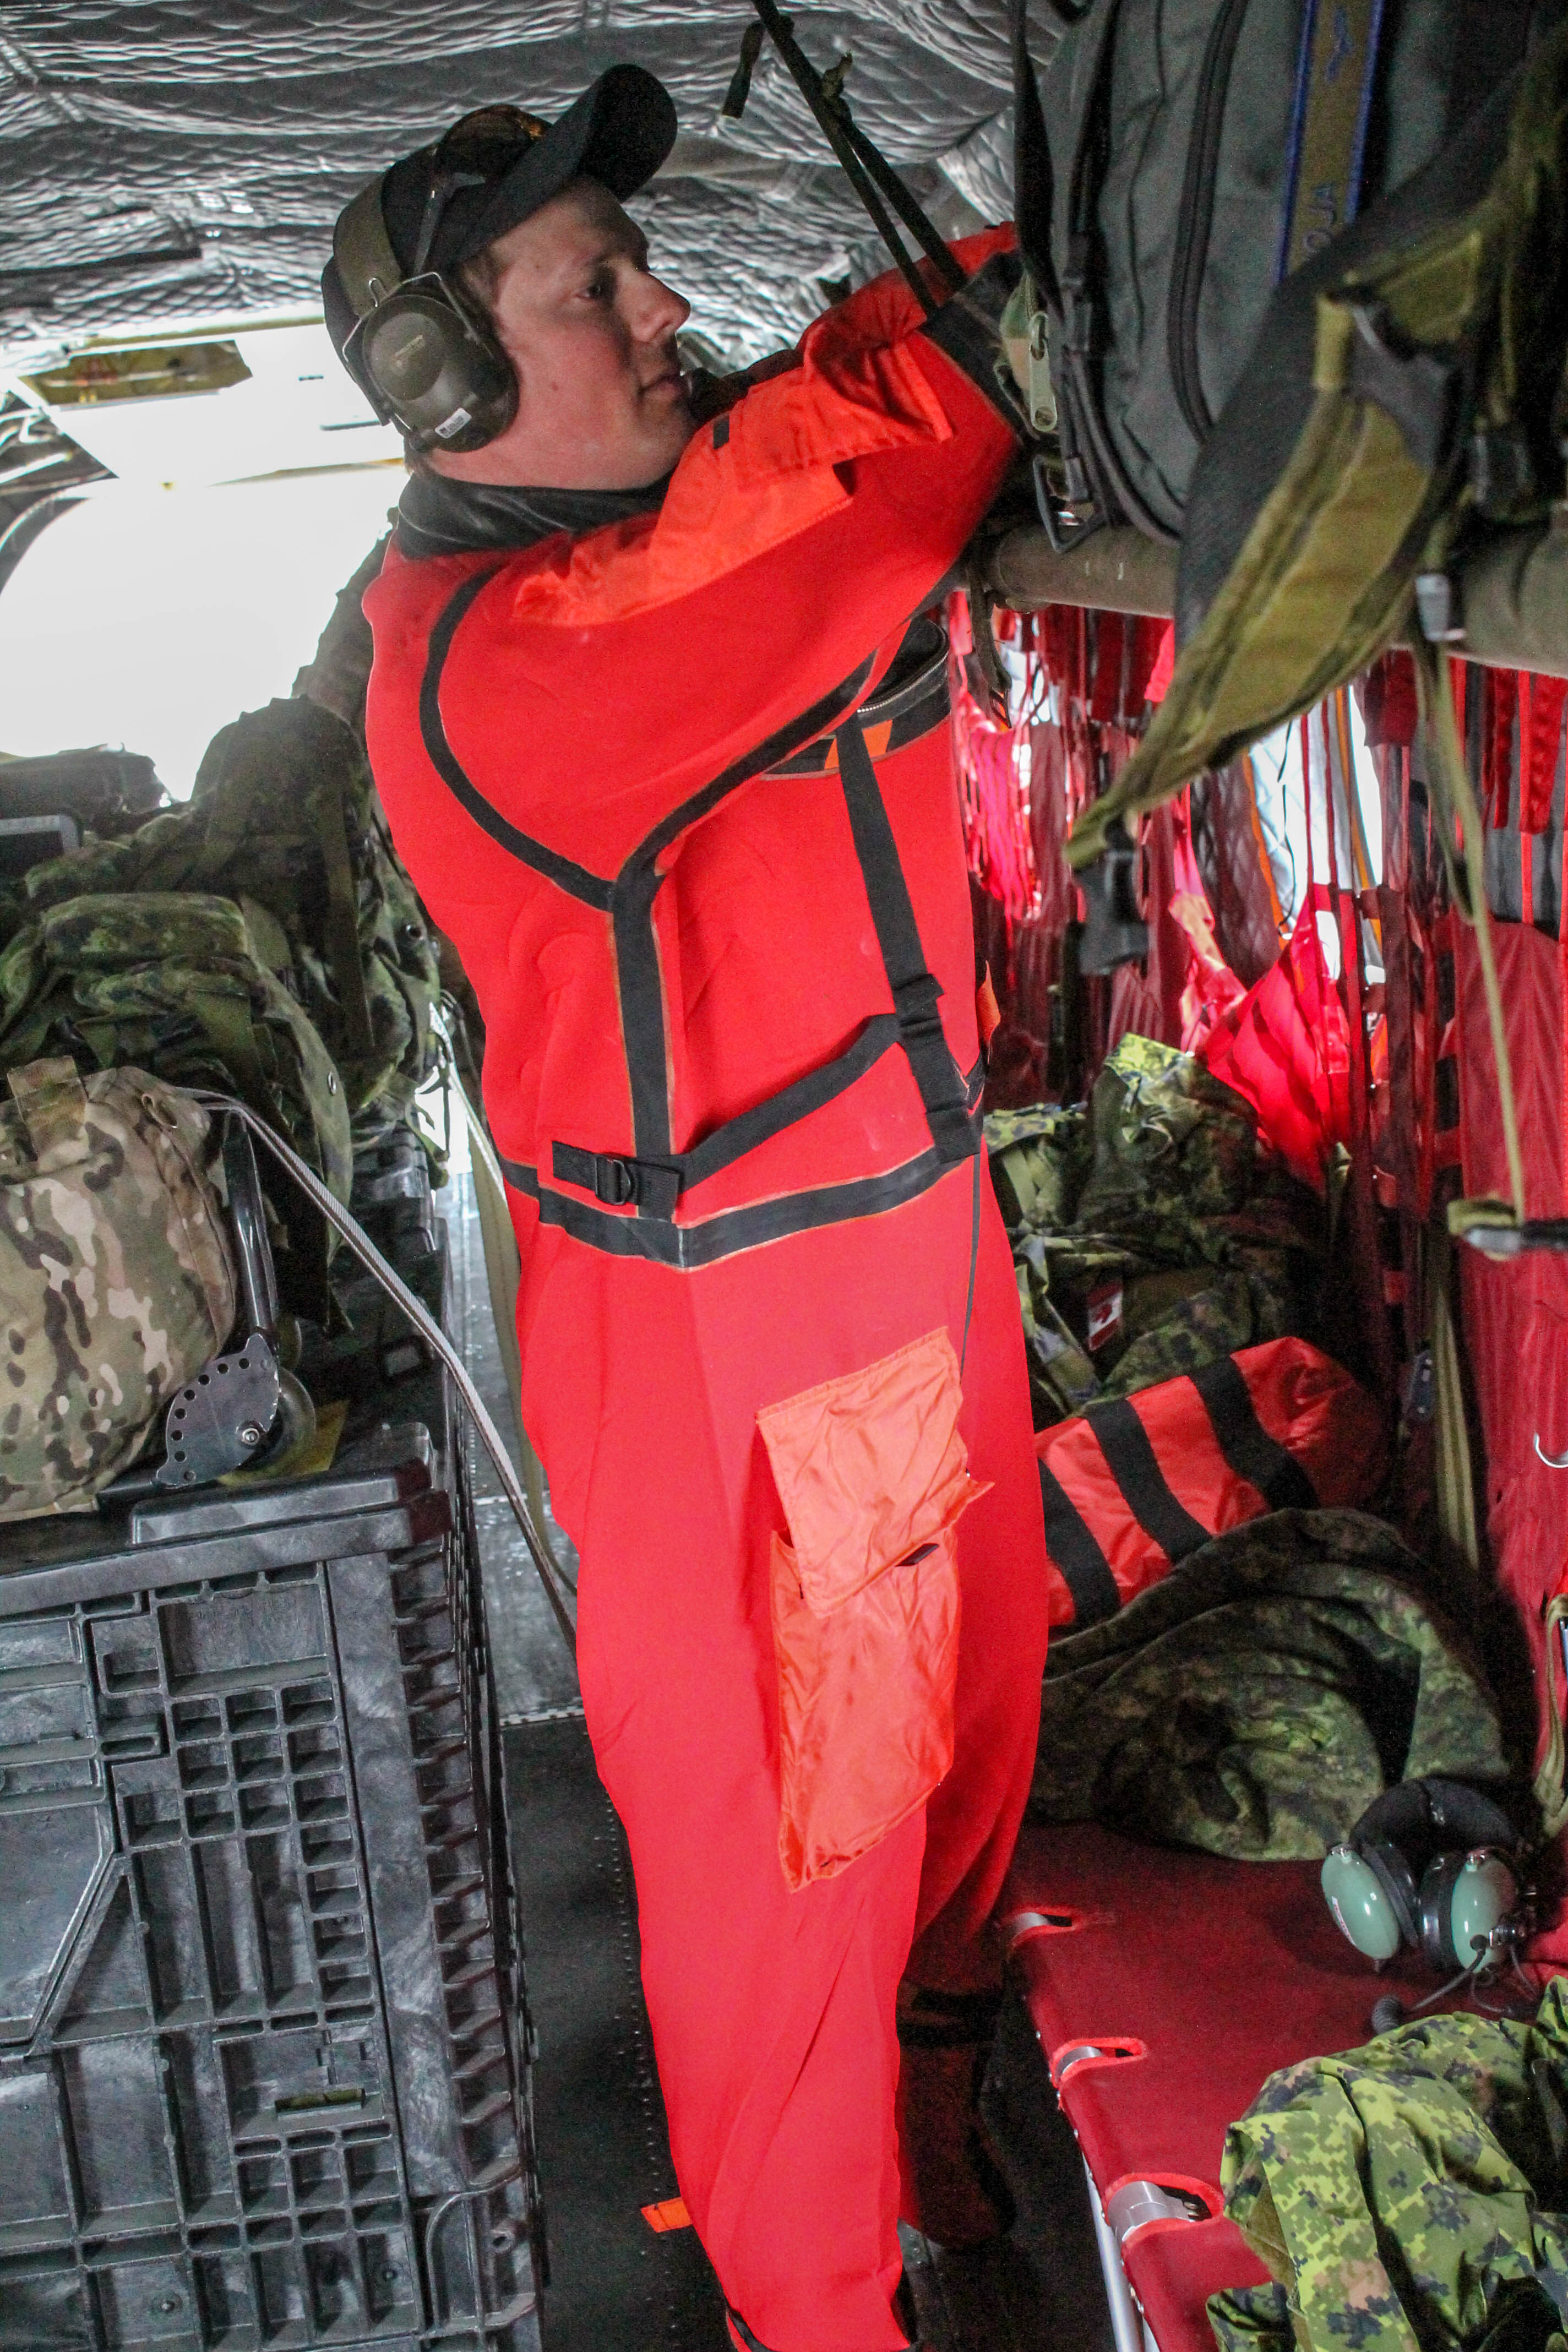 Corporal Christopher Andrew, an Avionics Systems Technician, donning his immersion suit prior to the open water transit. PHOTO: Corporal Justin Critchley